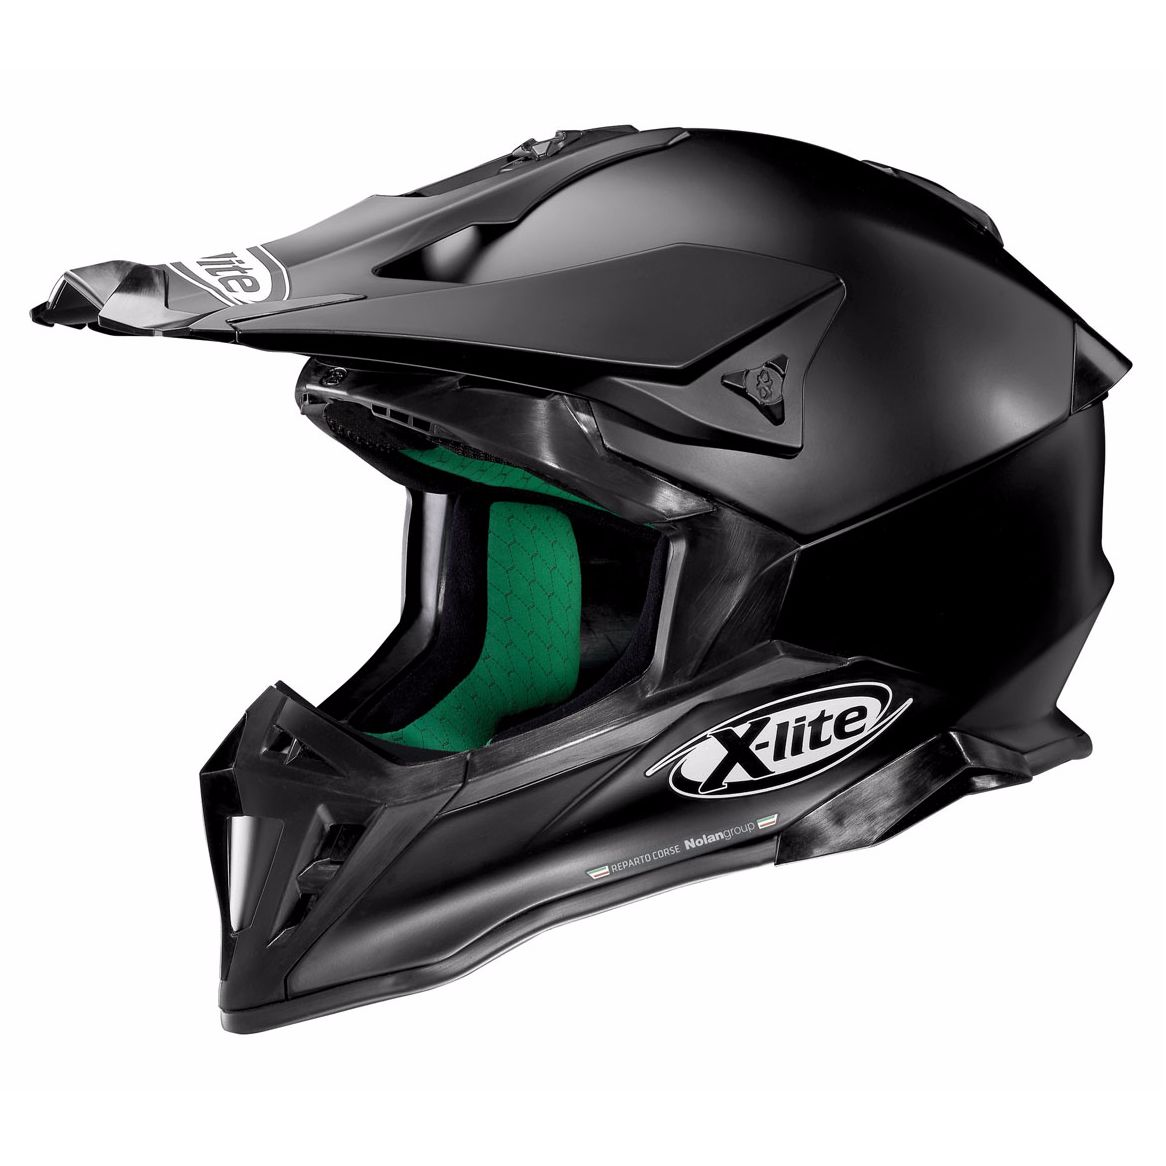 Casque Cross X-lite X-502 - Start Flat Black 4